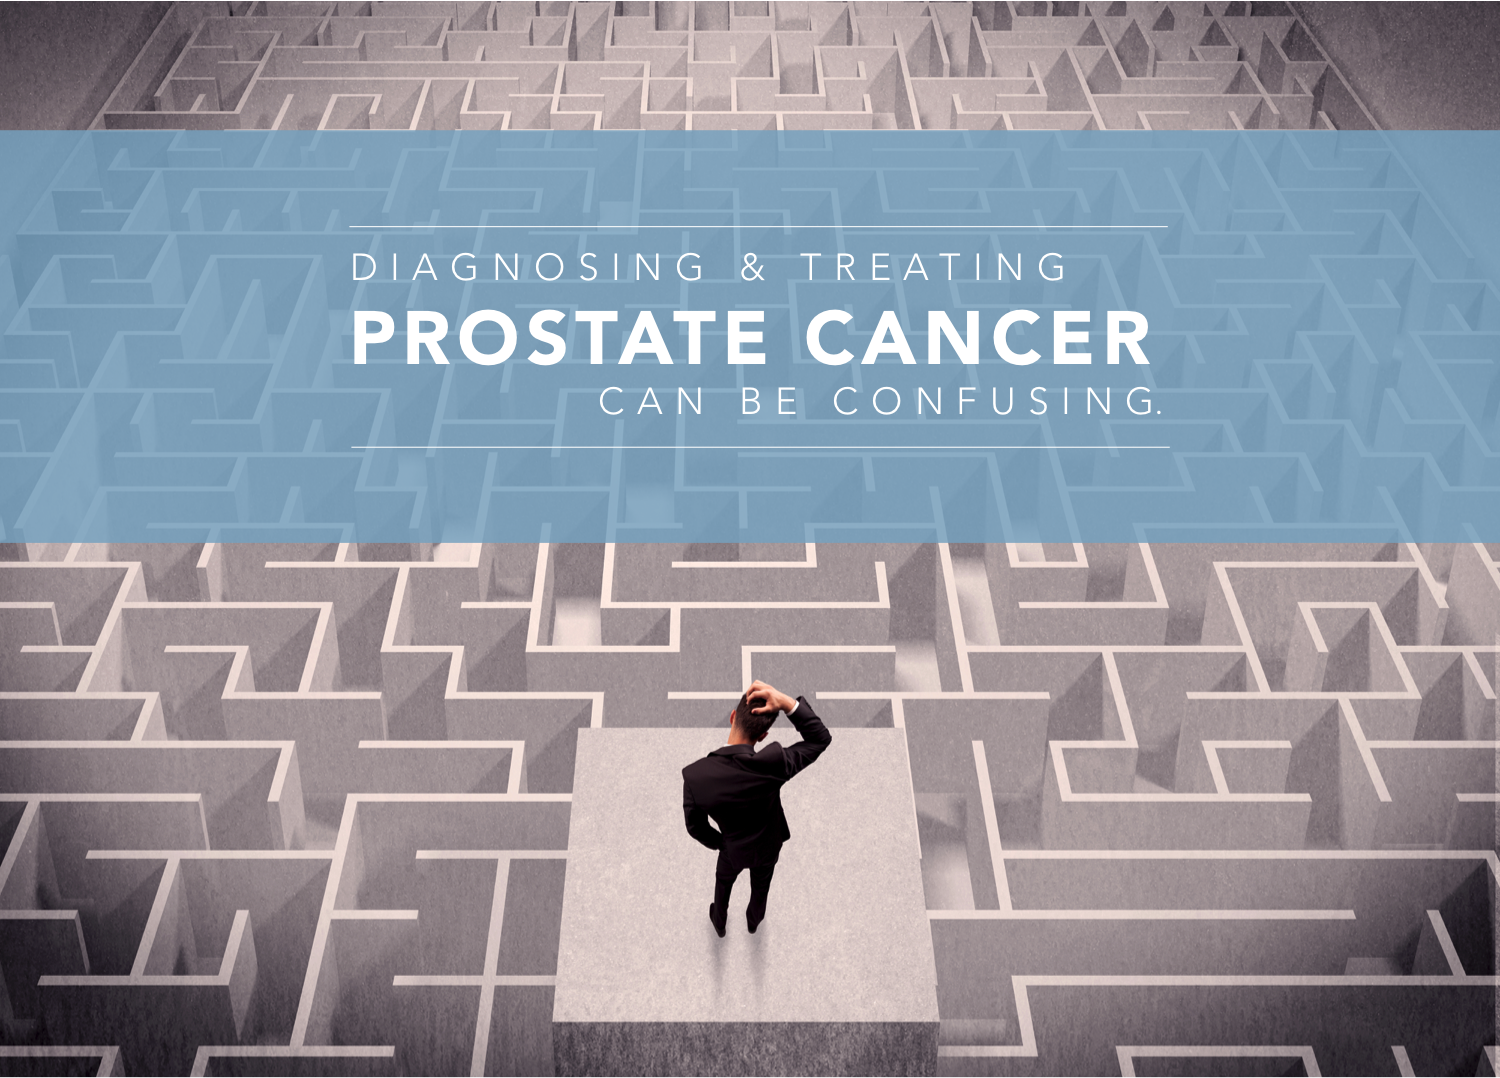 Diagnosing Prostate Cancer can be Confusing